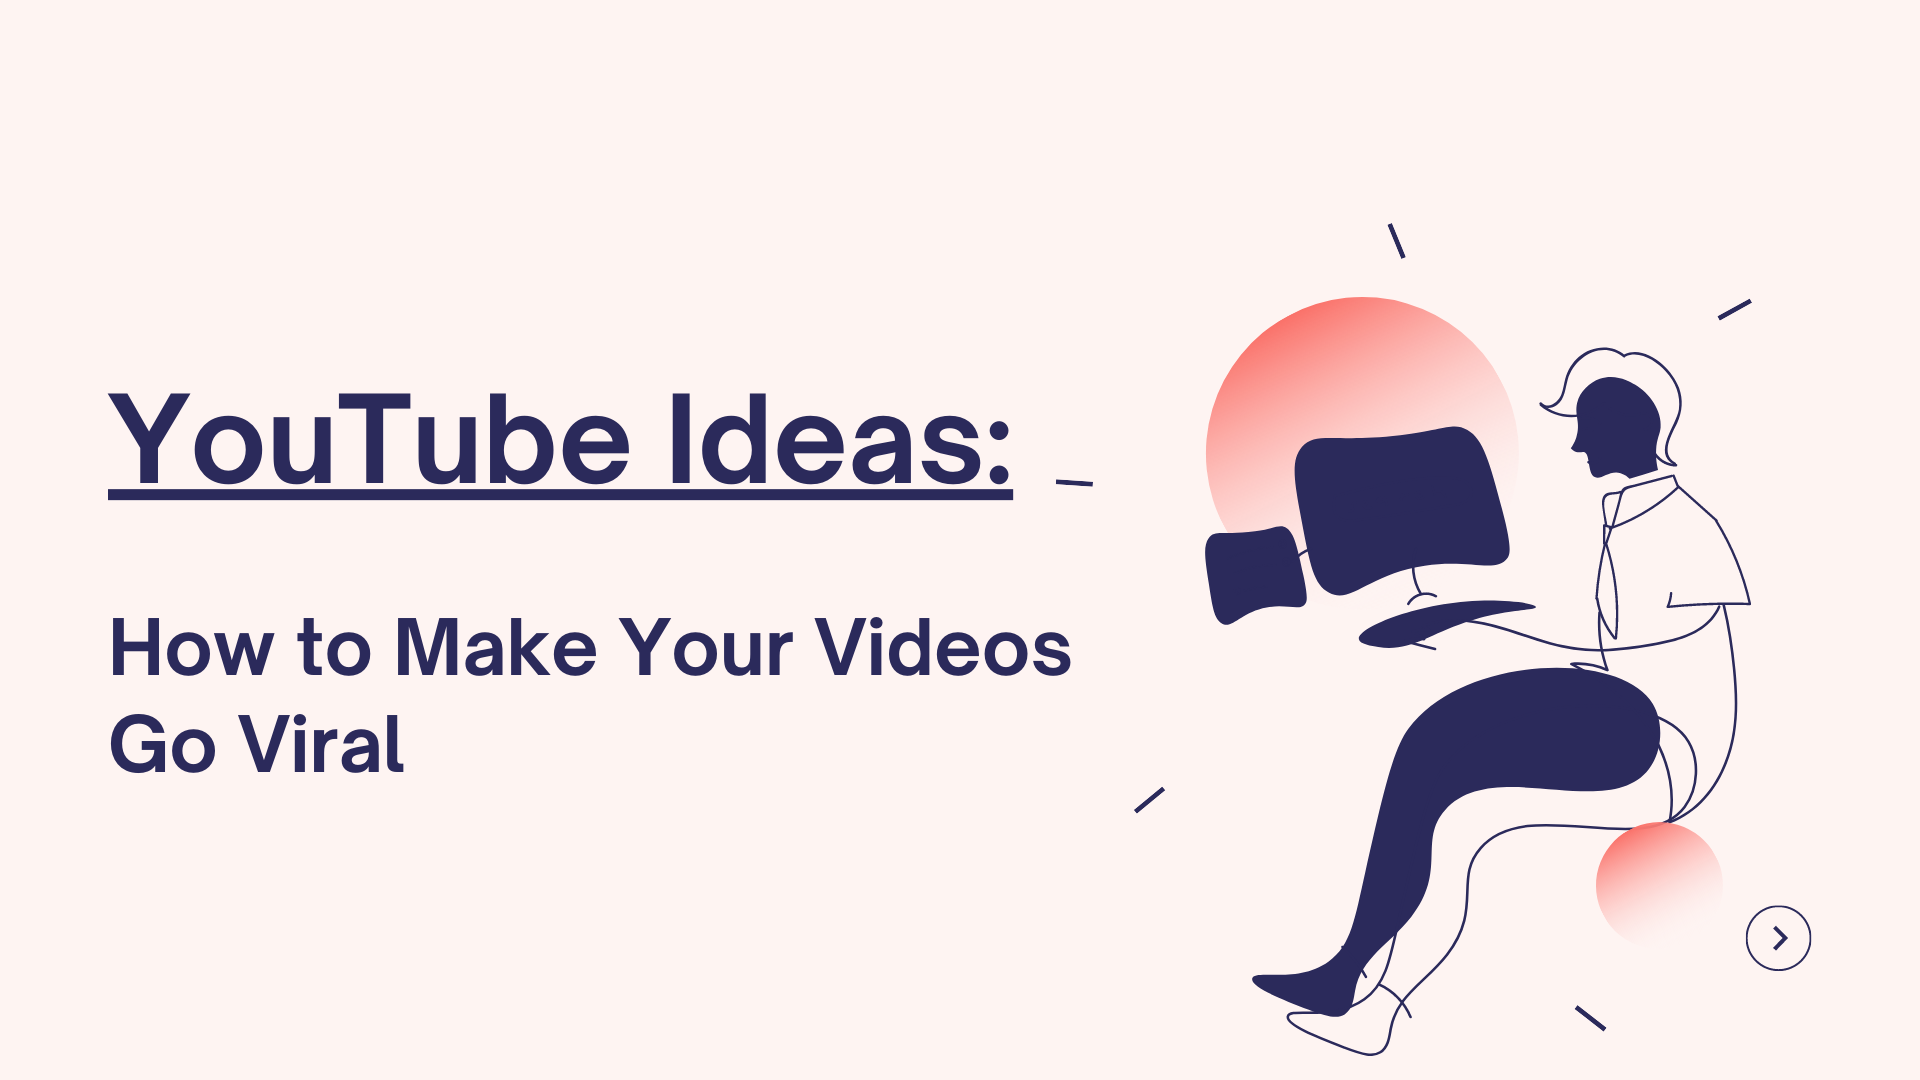 YouTube Ideas: How to make your videos go viral